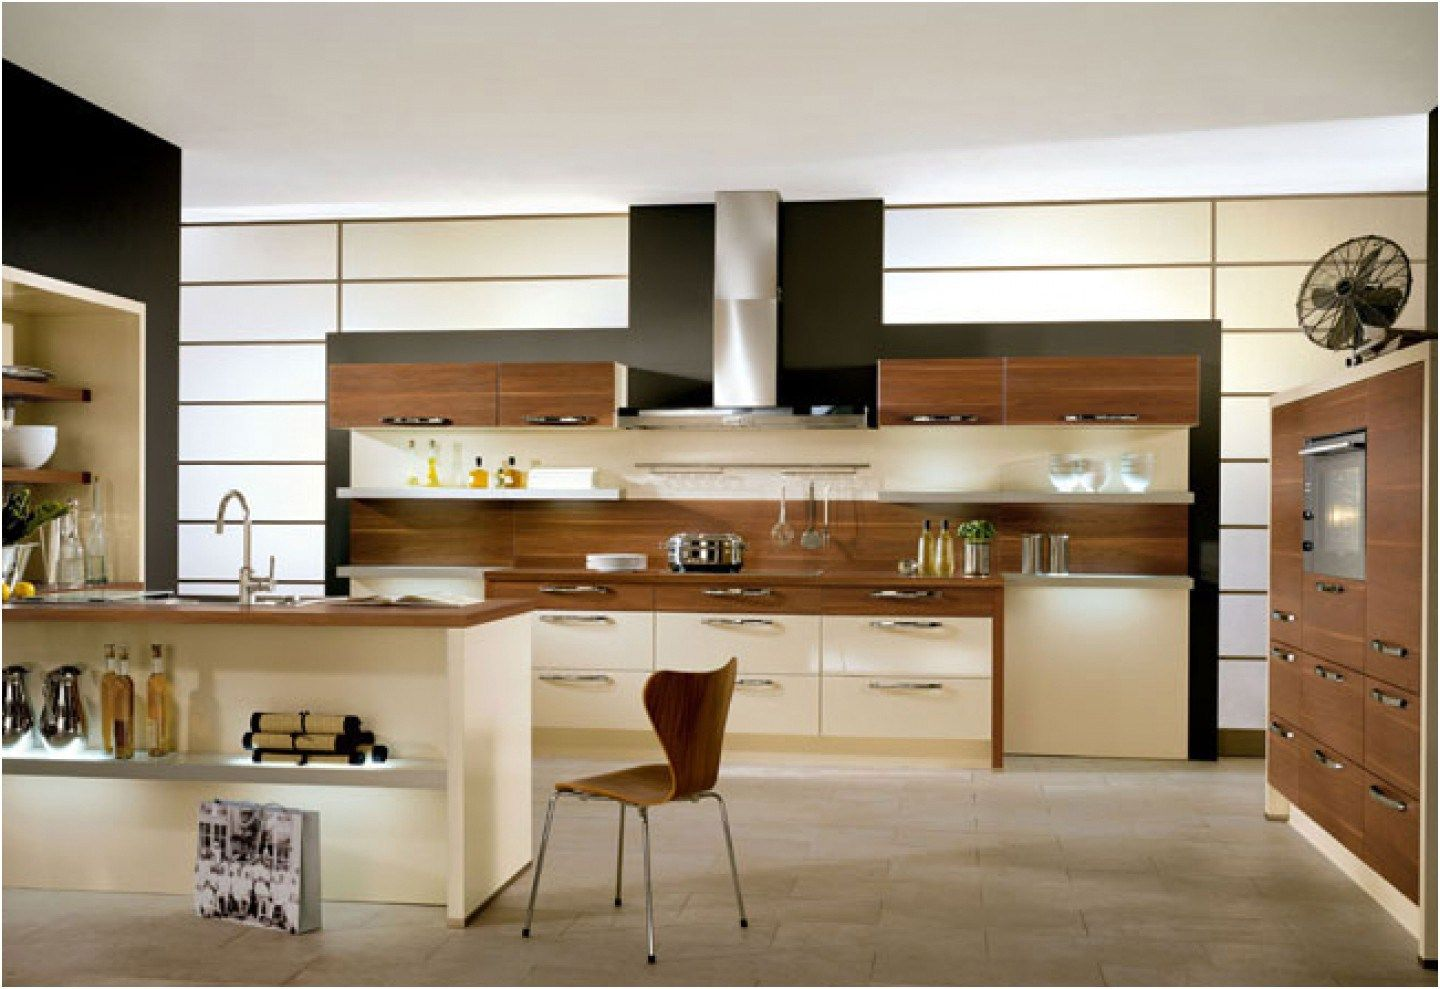 New Trends In Kitchen Appliances Akioz From Latest Trends In Kitchen  Appliances